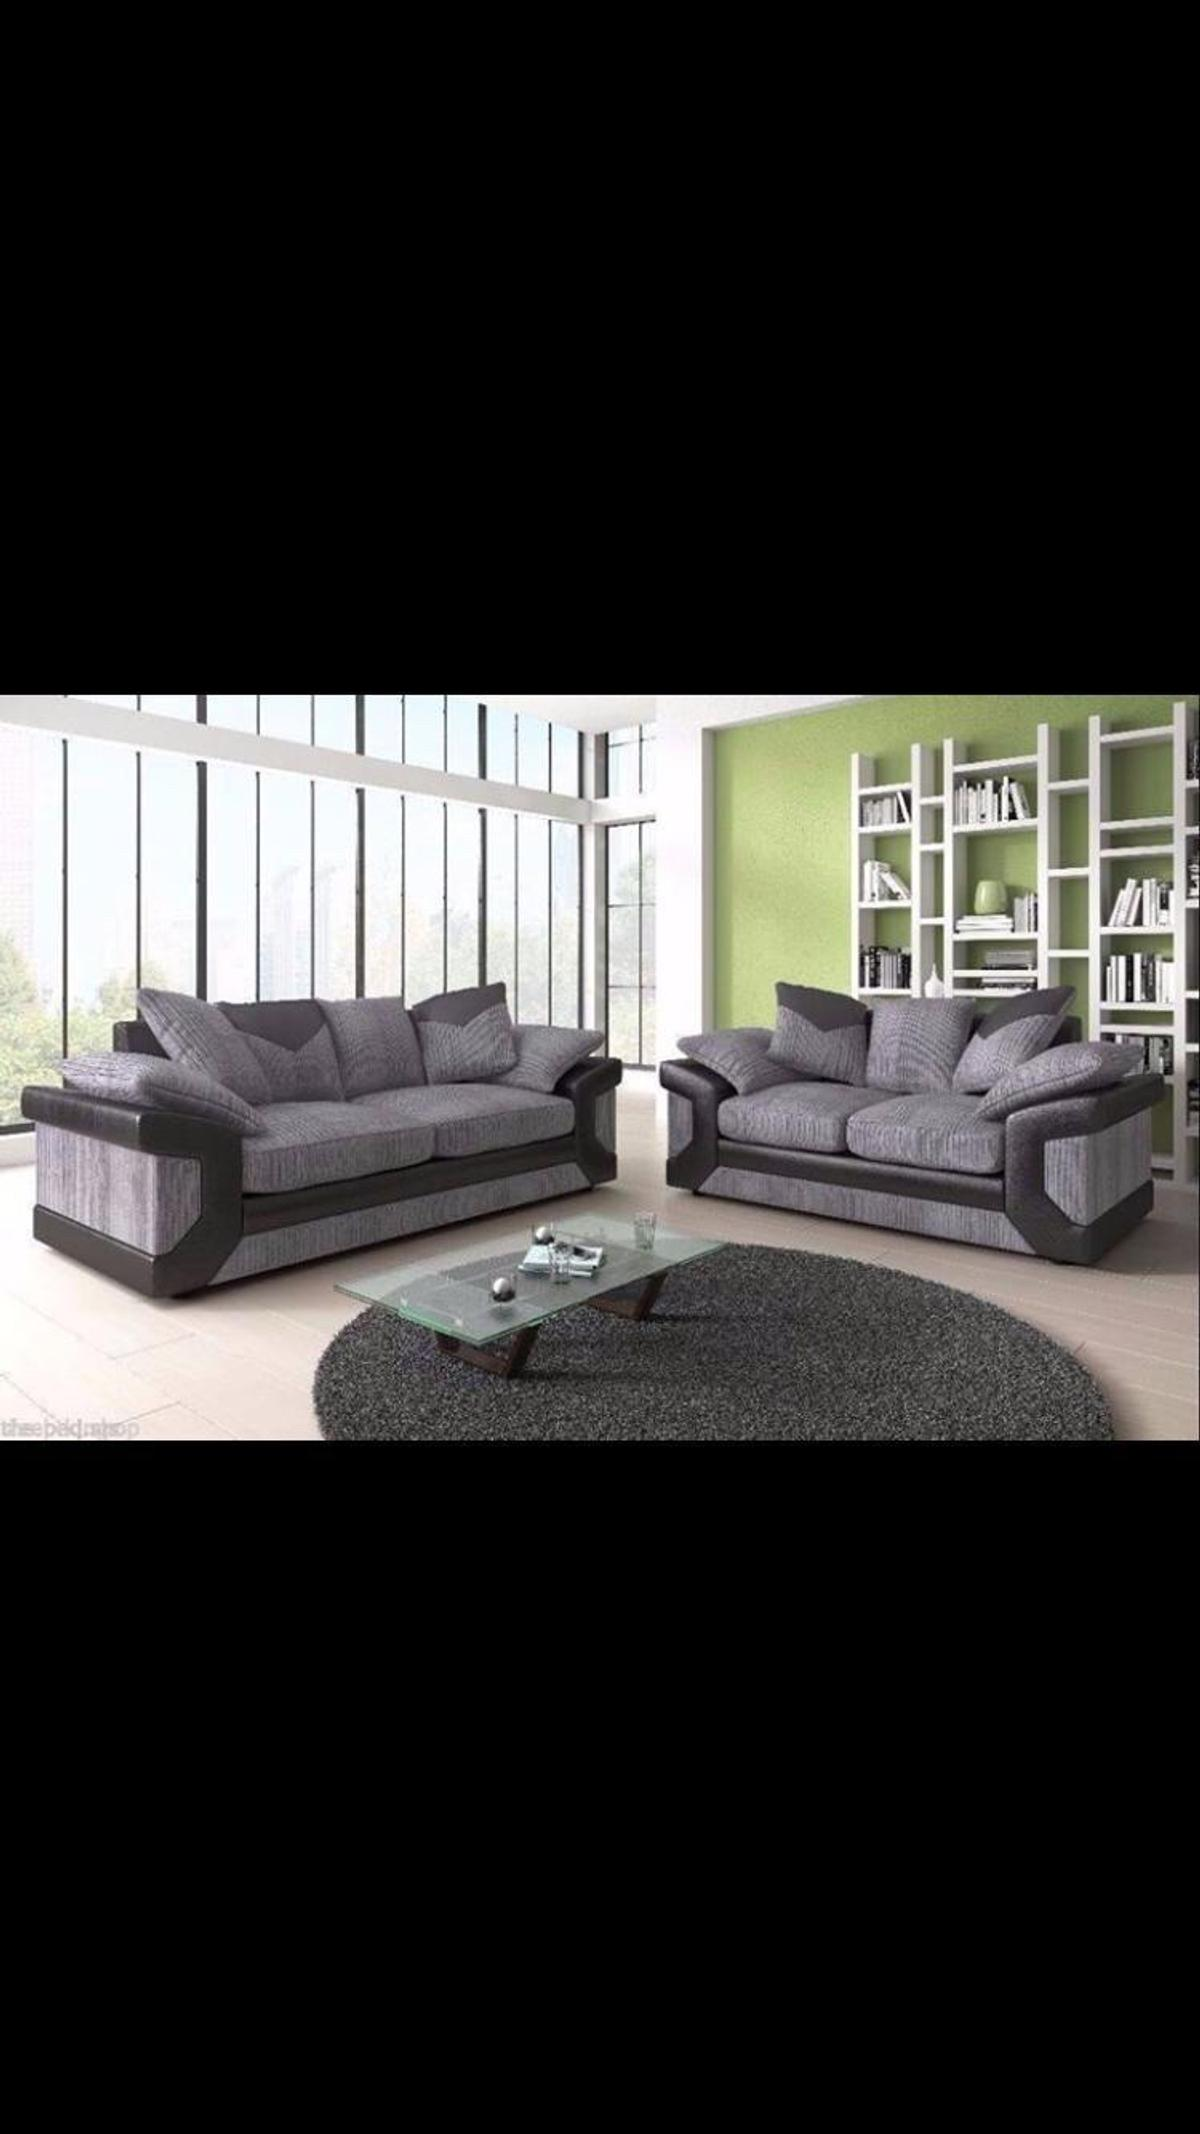 This is the new Dino luxury corner suite,the Dino is available in black/charcoal and also in brown/beige, The Dino has a suede/leather effect fabric effect with a black soft touch deep pile fabric on the main areas.  The Dino has extra deep seats which are fiber filled for body hugging comfort.  DIMENSIONS for corner: Corner Sofa Width: 244 x 222cm Corner Sofa Height: 92cm  PRICE FOR CORNER: - (including all cushions!)  Dimensions for 3+2:-  3 Seater- 210cm x 89cm x 92cm 2 Seater- 180cm x 89cm x 92cm  PRICE FOR 3+2: £379/- (including all cushions!)  COLOUR: Black and Grey OR Brown and Beige  ORIENTATION: Left & right hand side Read less Read less Read less Read less Read less Read less Read less Read less Read less Read less